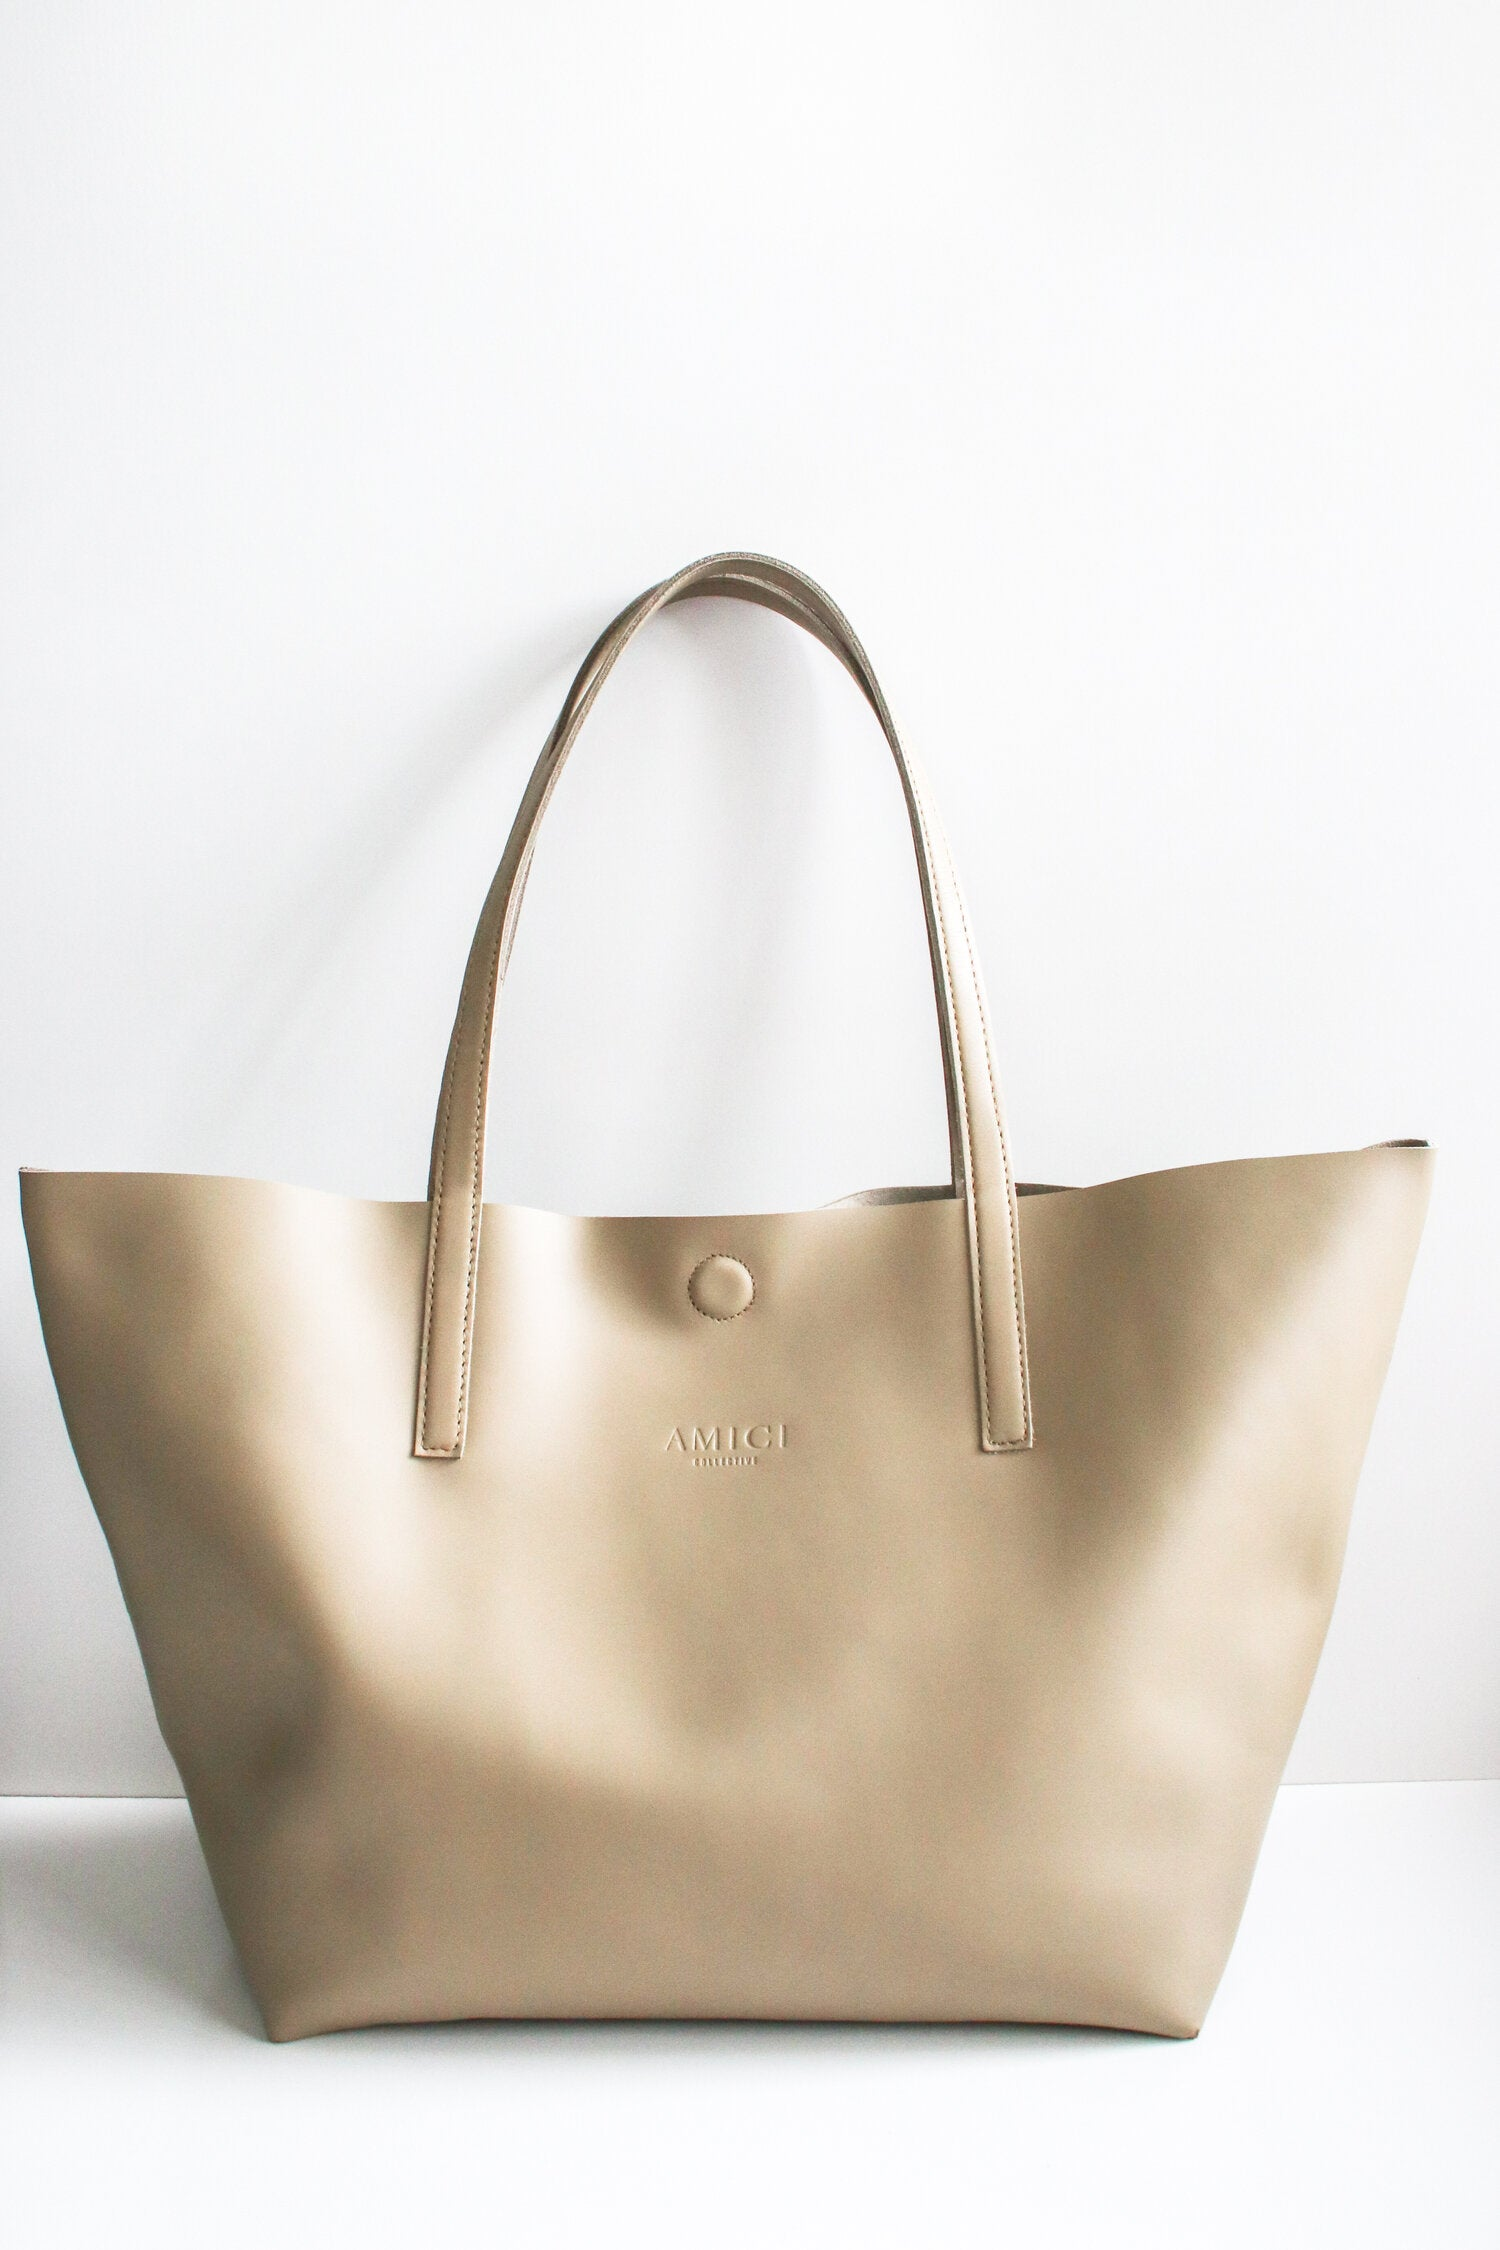 Taupe Traveller Tote Bag Bags + wallets The Fashion Advocate ethical Australian fashion designer boutique Melbourne sustainable clothes